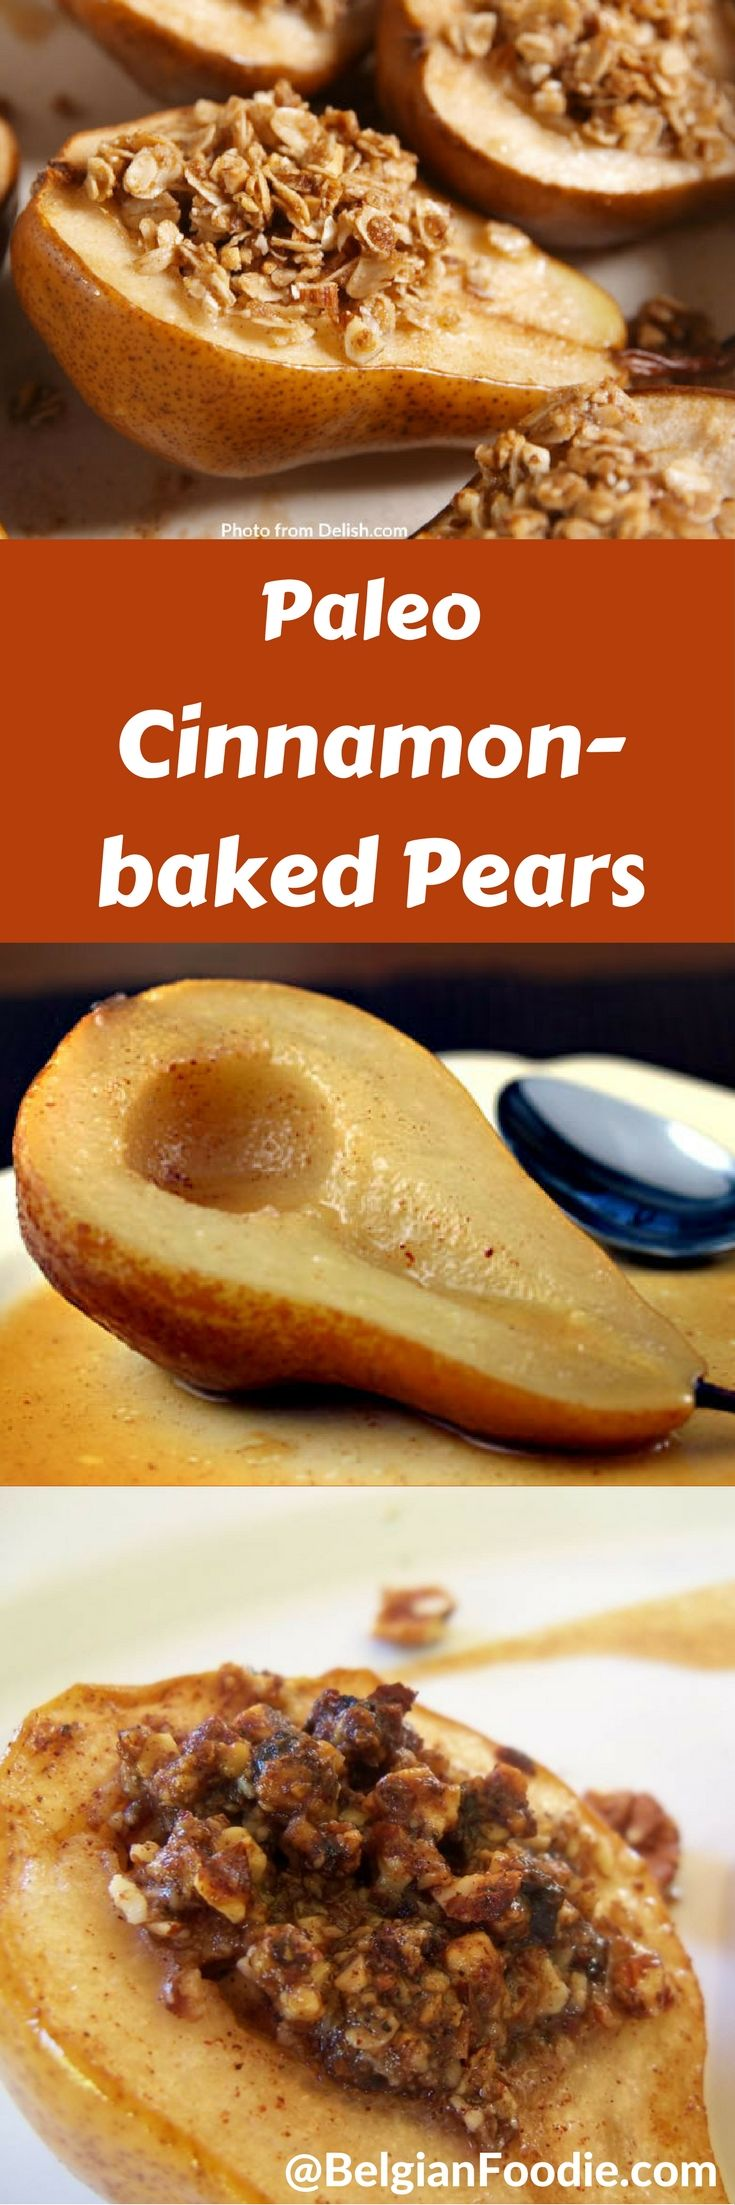 Try Heart-healthy (Paleo) Cinnamon-baked Pears for dessert for your family and friends.  Quick, easy, tasty and healthy.